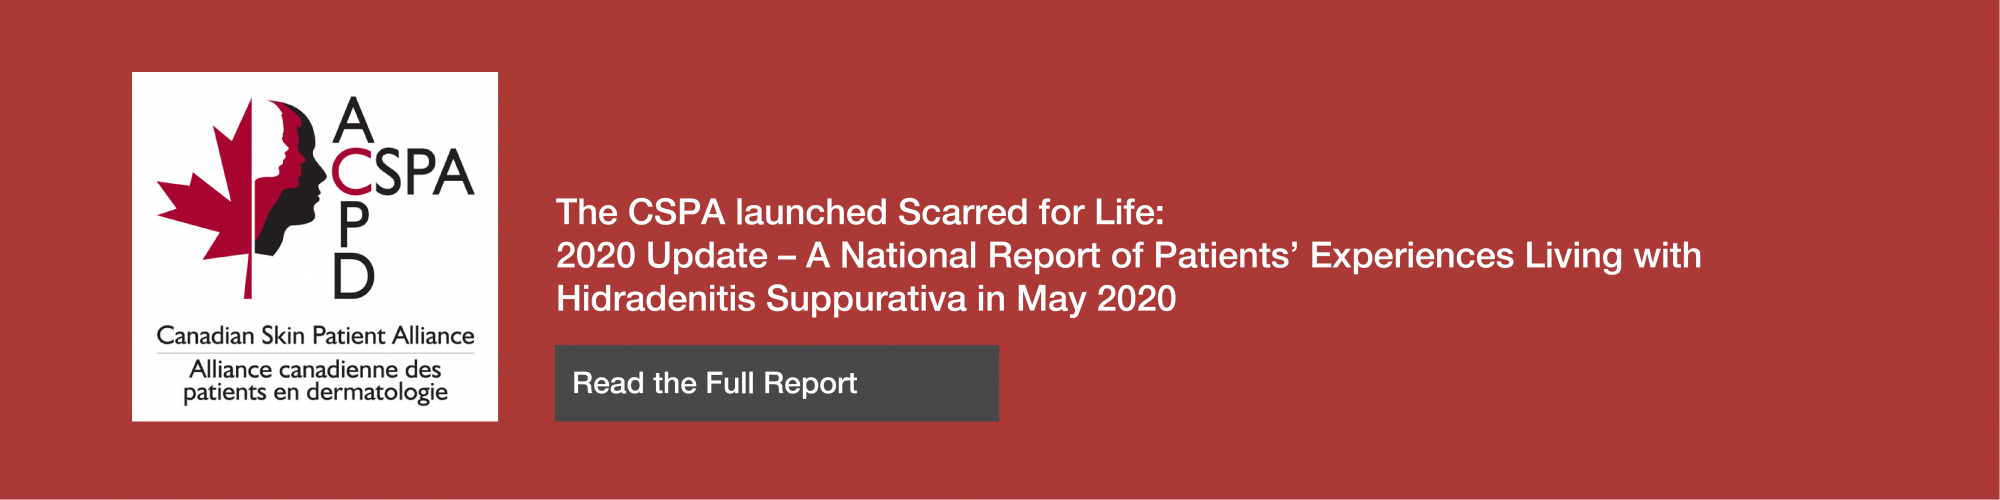 CSPA-National Report-ENG-red2